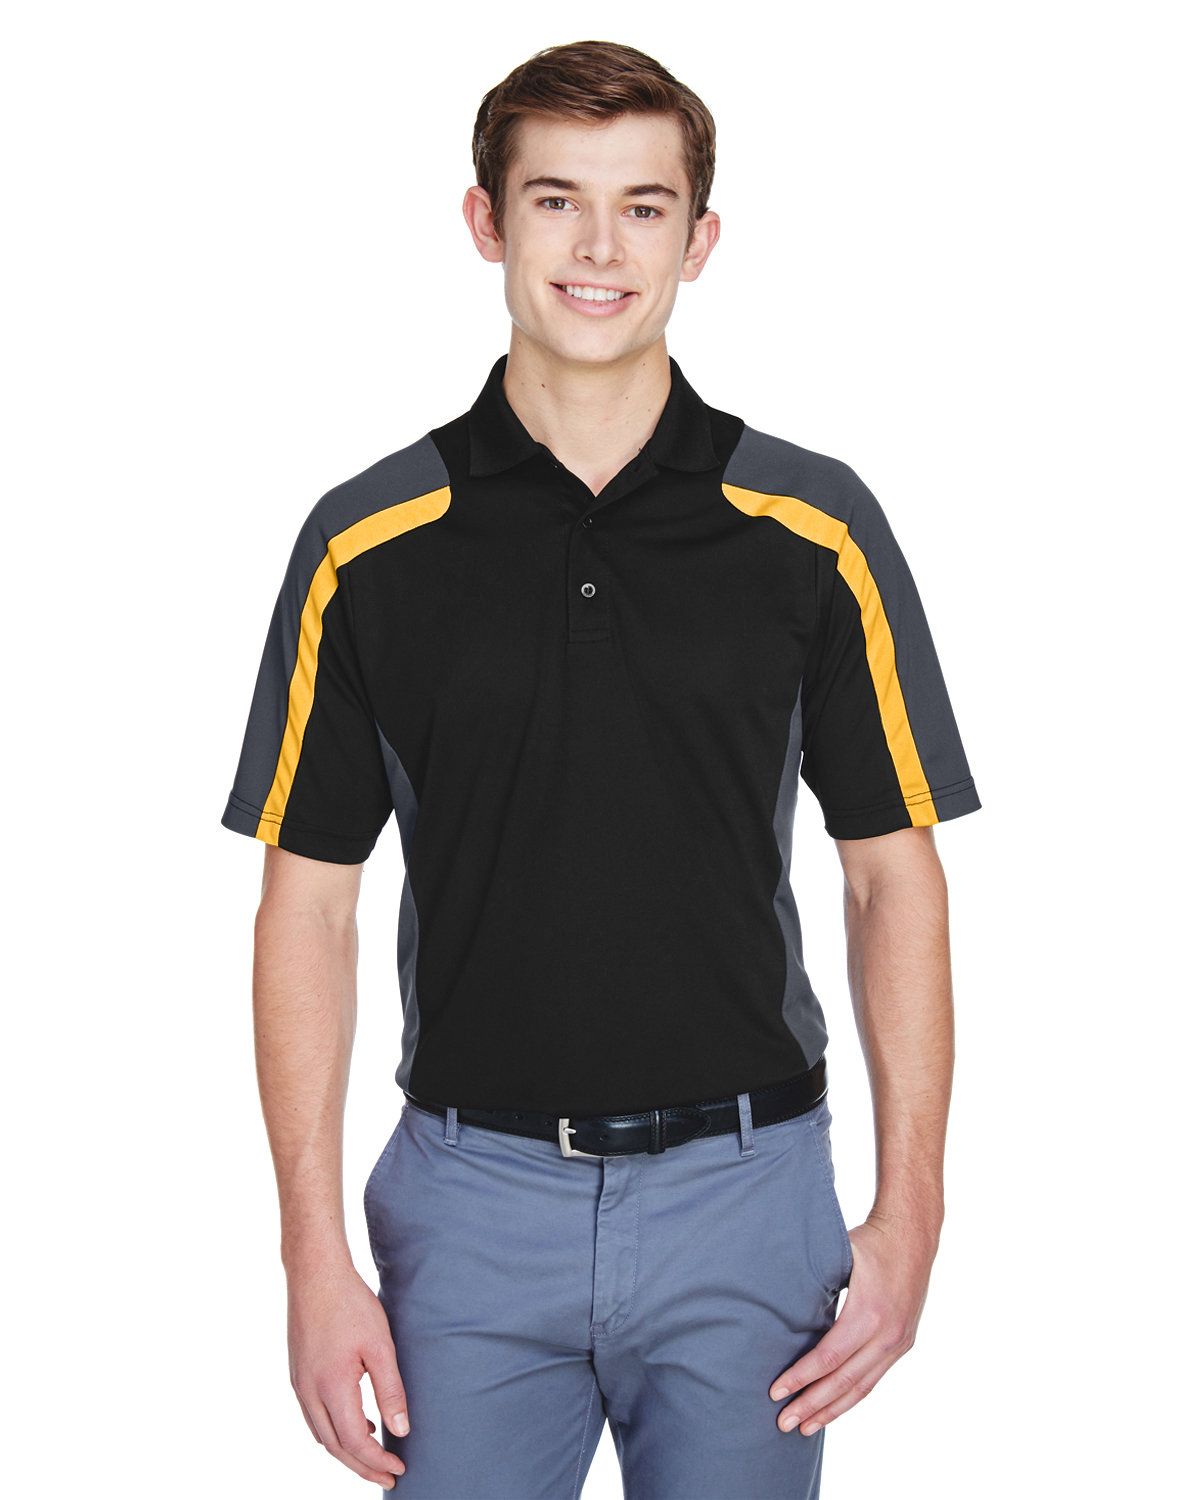 Extreme Men's Eperformance™ Strike Colorblock Snag Protection Polo BLK/ CMPS GOLD